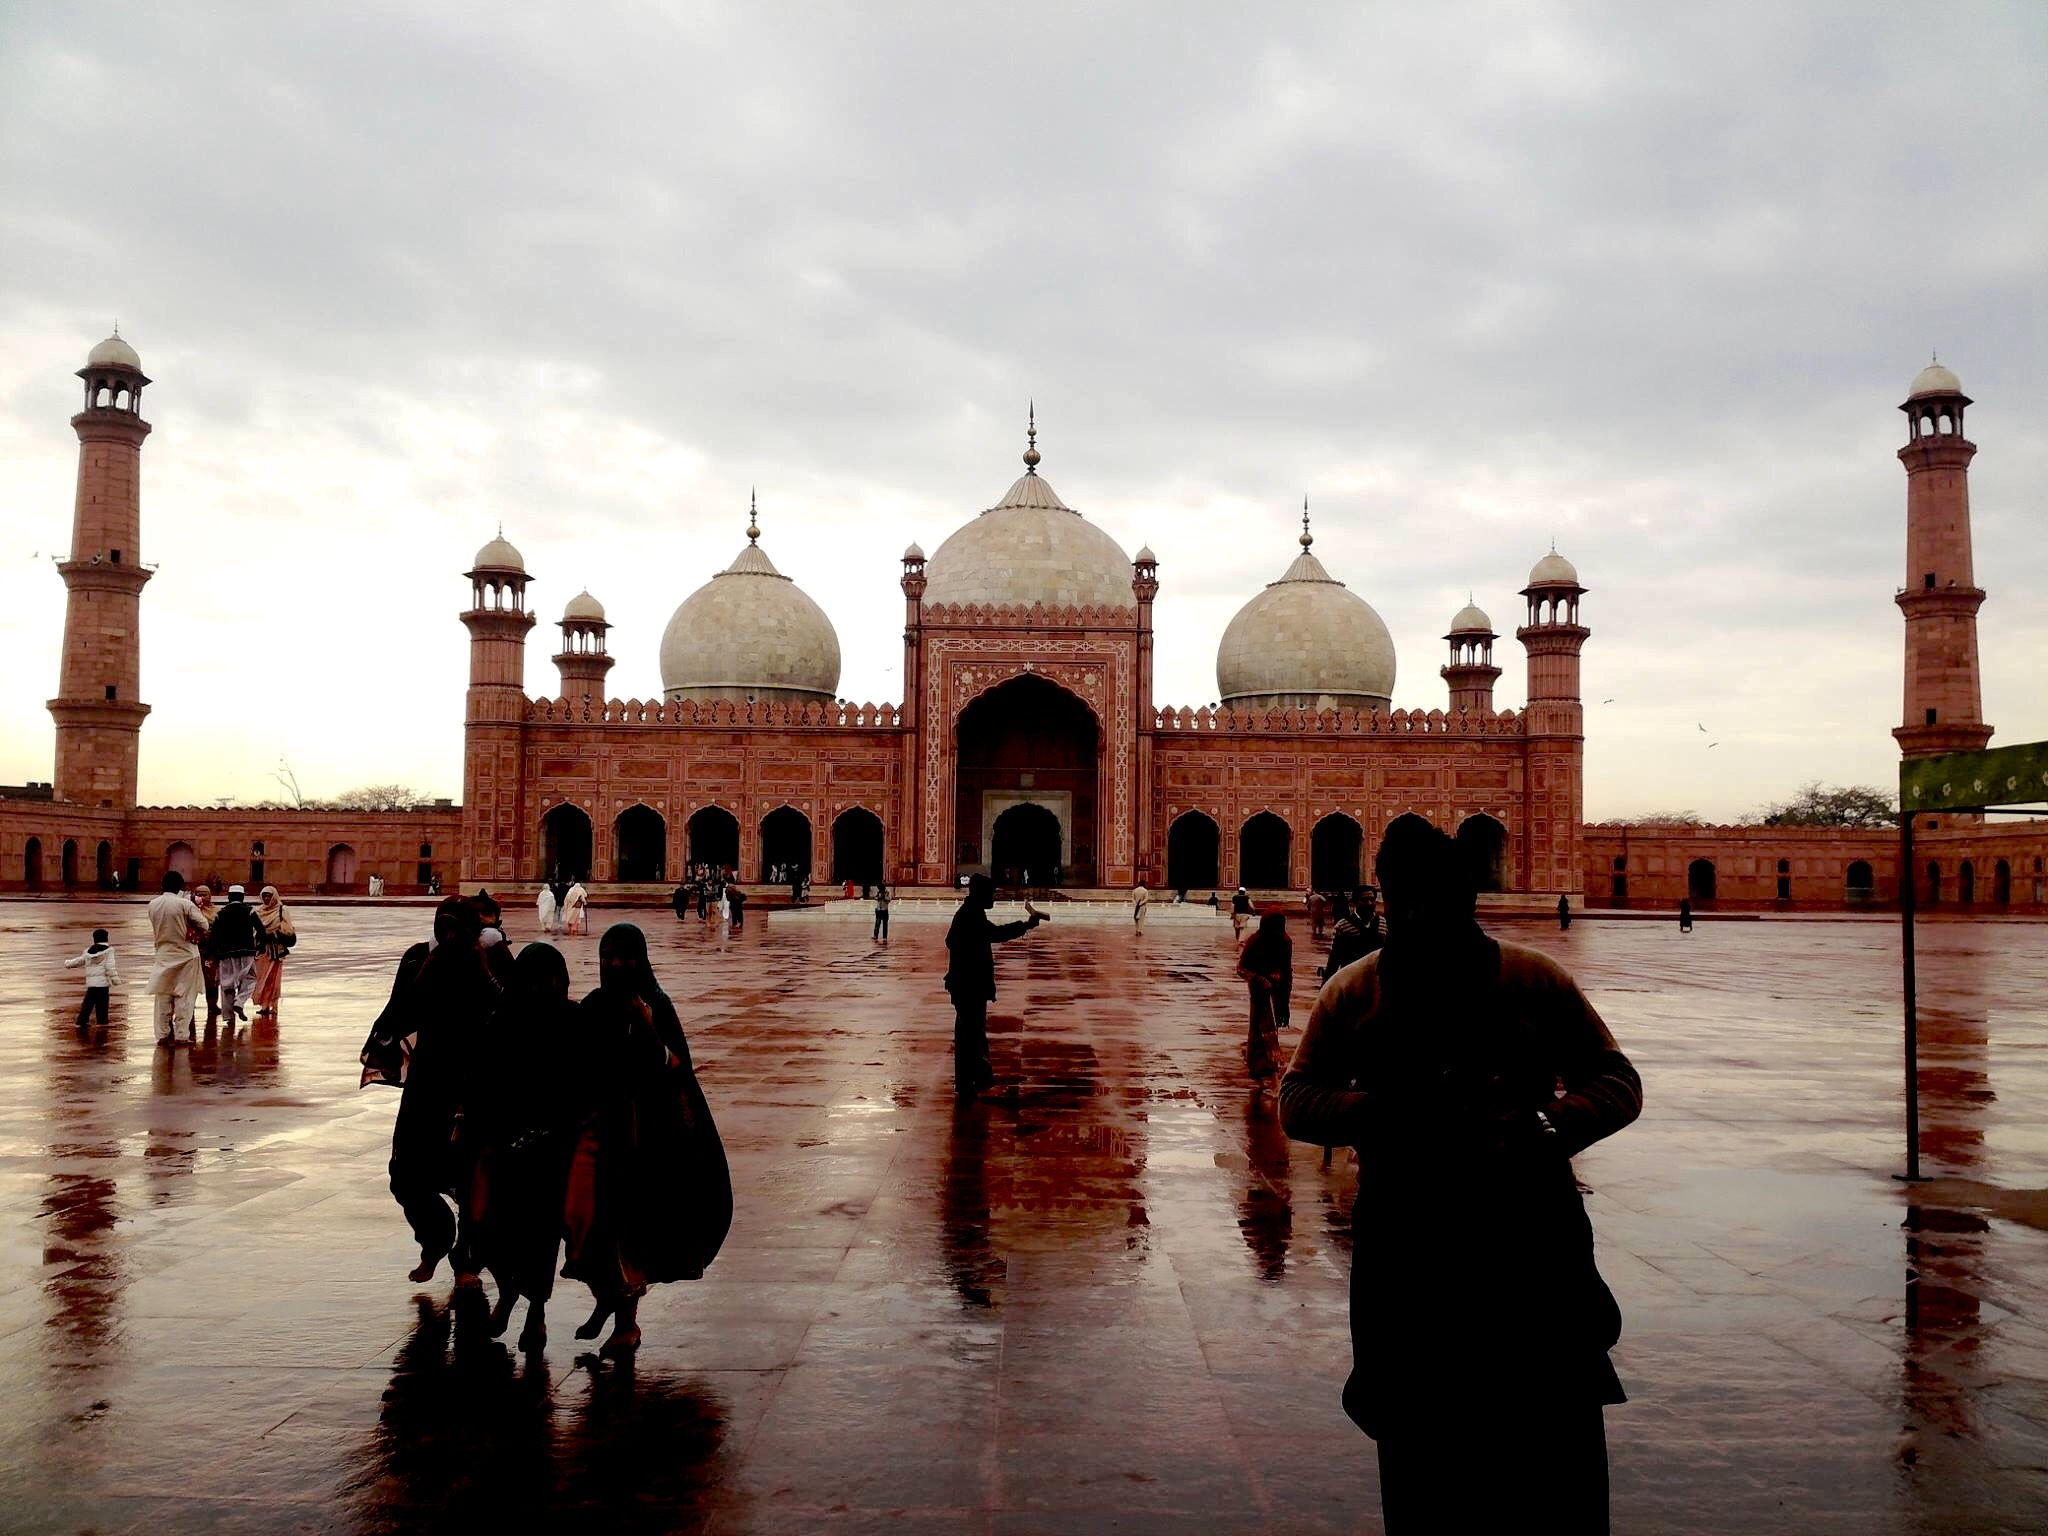 Visit to the Emperor's Mosque Pakistan by Hamza Arif